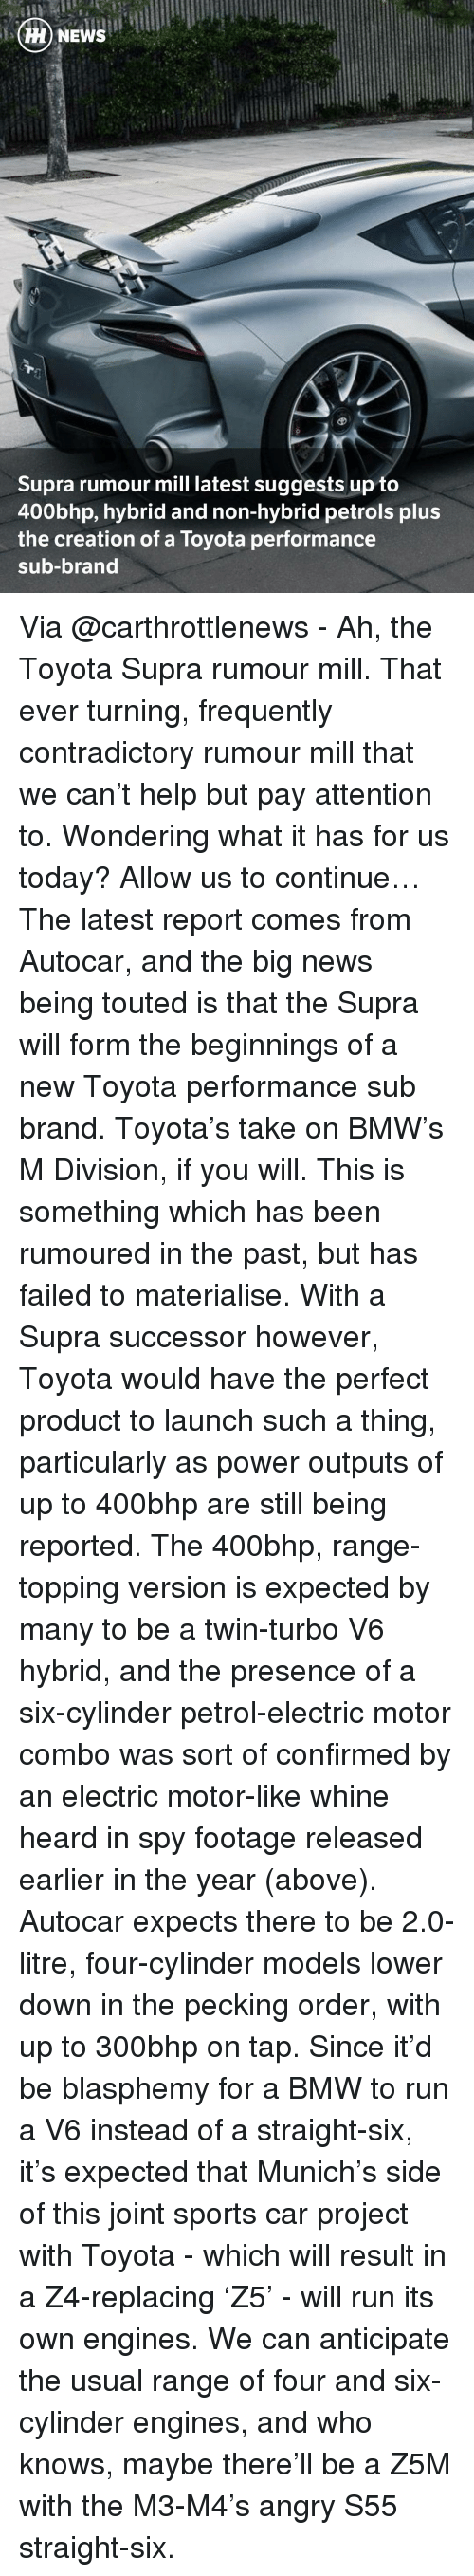 Bmw, Fail, and Memes: HH NEWS  Supra rumour mill latest suggests up to  400bhp, hybrid and non-hybrid petrols plus  the creation of a Toyota performance  sub-brand Via @carthrottlenews - Ah, the Toyota Supra rumour mill. That ever turning, frequently contradictory rumour mill that we can't help but pay attention to. Wondering what it has for us today? Allow us to continue… The latest report comes from Autocar, and the big news being touted is that the Supra will form the beginnings of a new Toyota performance sub brand. Toyota's take on BMW's M Division, if you will. This is something which has been rumoured in the past, but has failed to materialise. With a Supra successor however, Toyota would have the perfect product to launch such a thing, particularly as power outputs of up to 400bhp are still being reported. The 400bhp, range-topping version is expected by many to be a twin-turbo V6 hybrid, and the presence of a six-cylinder petrol-electric motor combo was sort of confirmed by an electric motor-like whine heard in spy footage released earlier in the year (above). Autocar expects there to be 2.0-litre, four-cylinder models lower down in the pecking order, with up to 300bhp on tap. Since it'd be blasphemy for a BMW to run a V6 instead of a straight-six, it's expected that Munich's side of this joint sports car project with Toyota - which will result in a Z4-replacing 'Z5' - will run its own engines. We can anticipate the usual range of four and six-cylinder engines, and who knows, maybe there'll be a Z5M with the M3-M4's angry S55 straight-six.